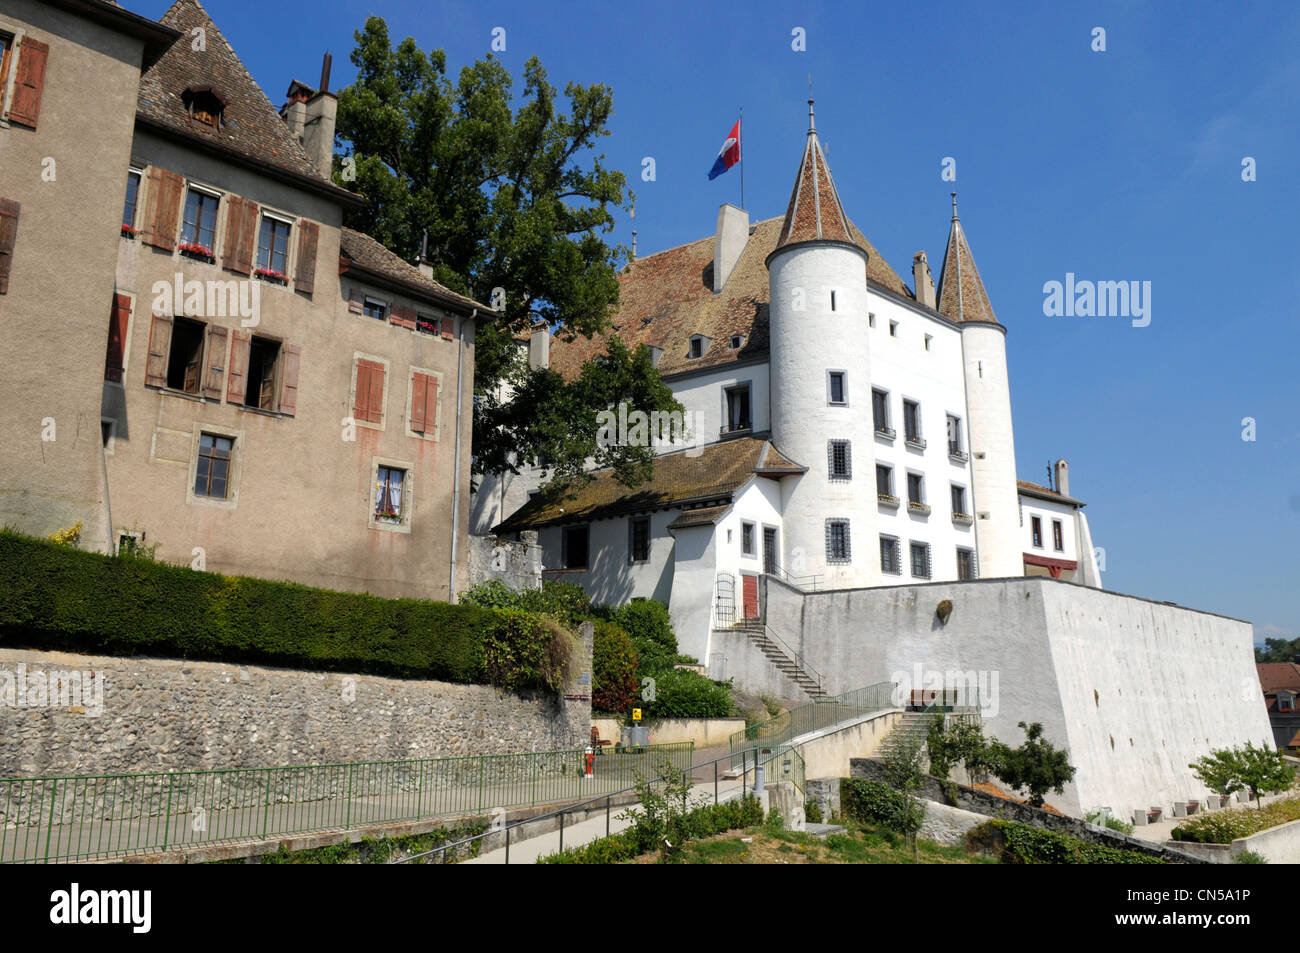 Switzerland, Canton of Vaud, Nyon, castle of the city housing a museum - Stock Image